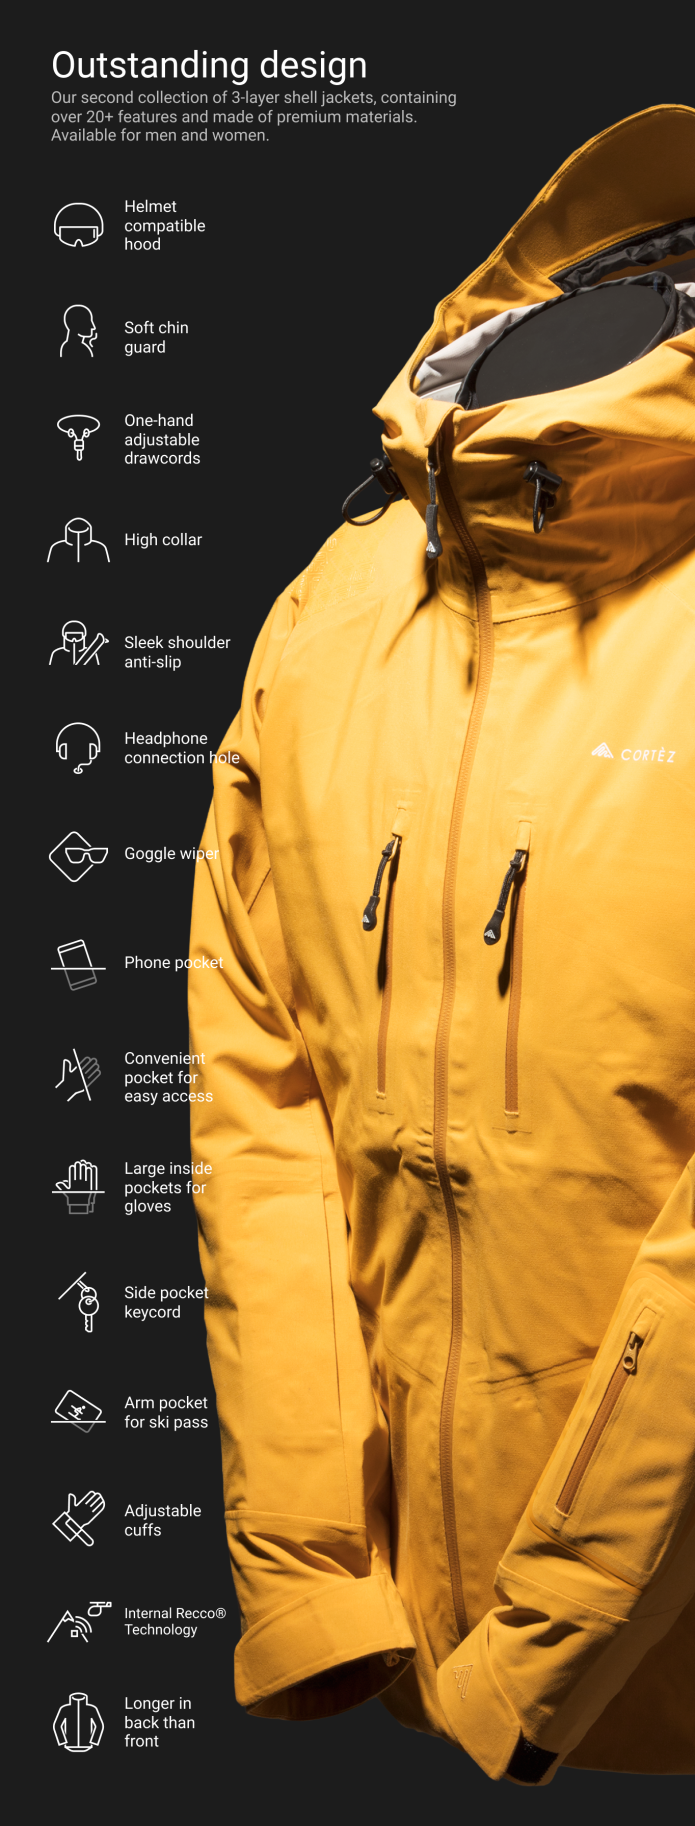 Cortez: High-quality jacket at revolutionary price-GadgetAny